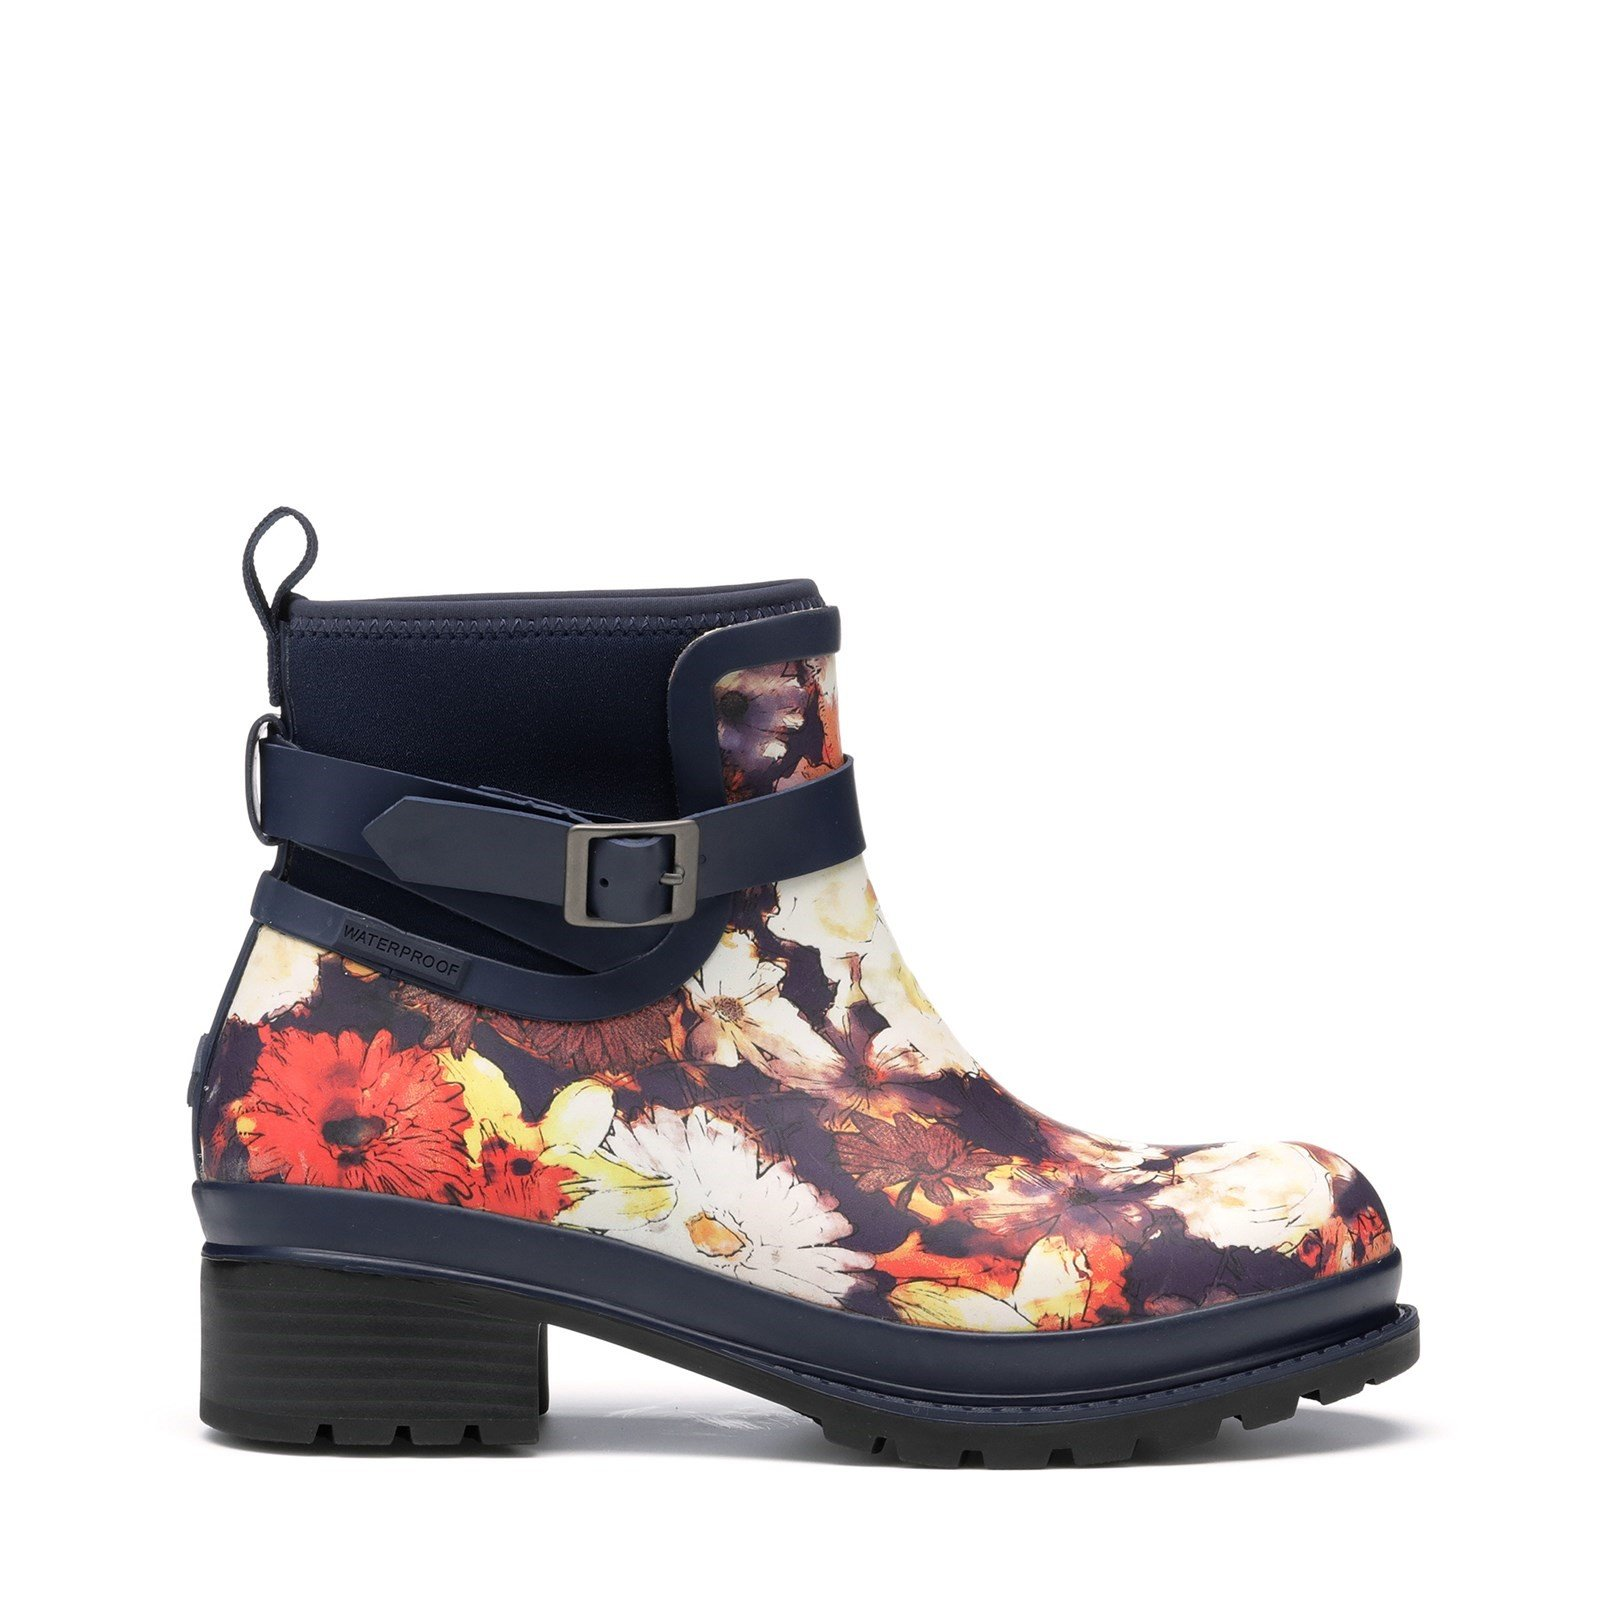 Muck Boots Women's Liberty Rubber Ankle Boots Various Colours 31816 - Navy Floral Print 3